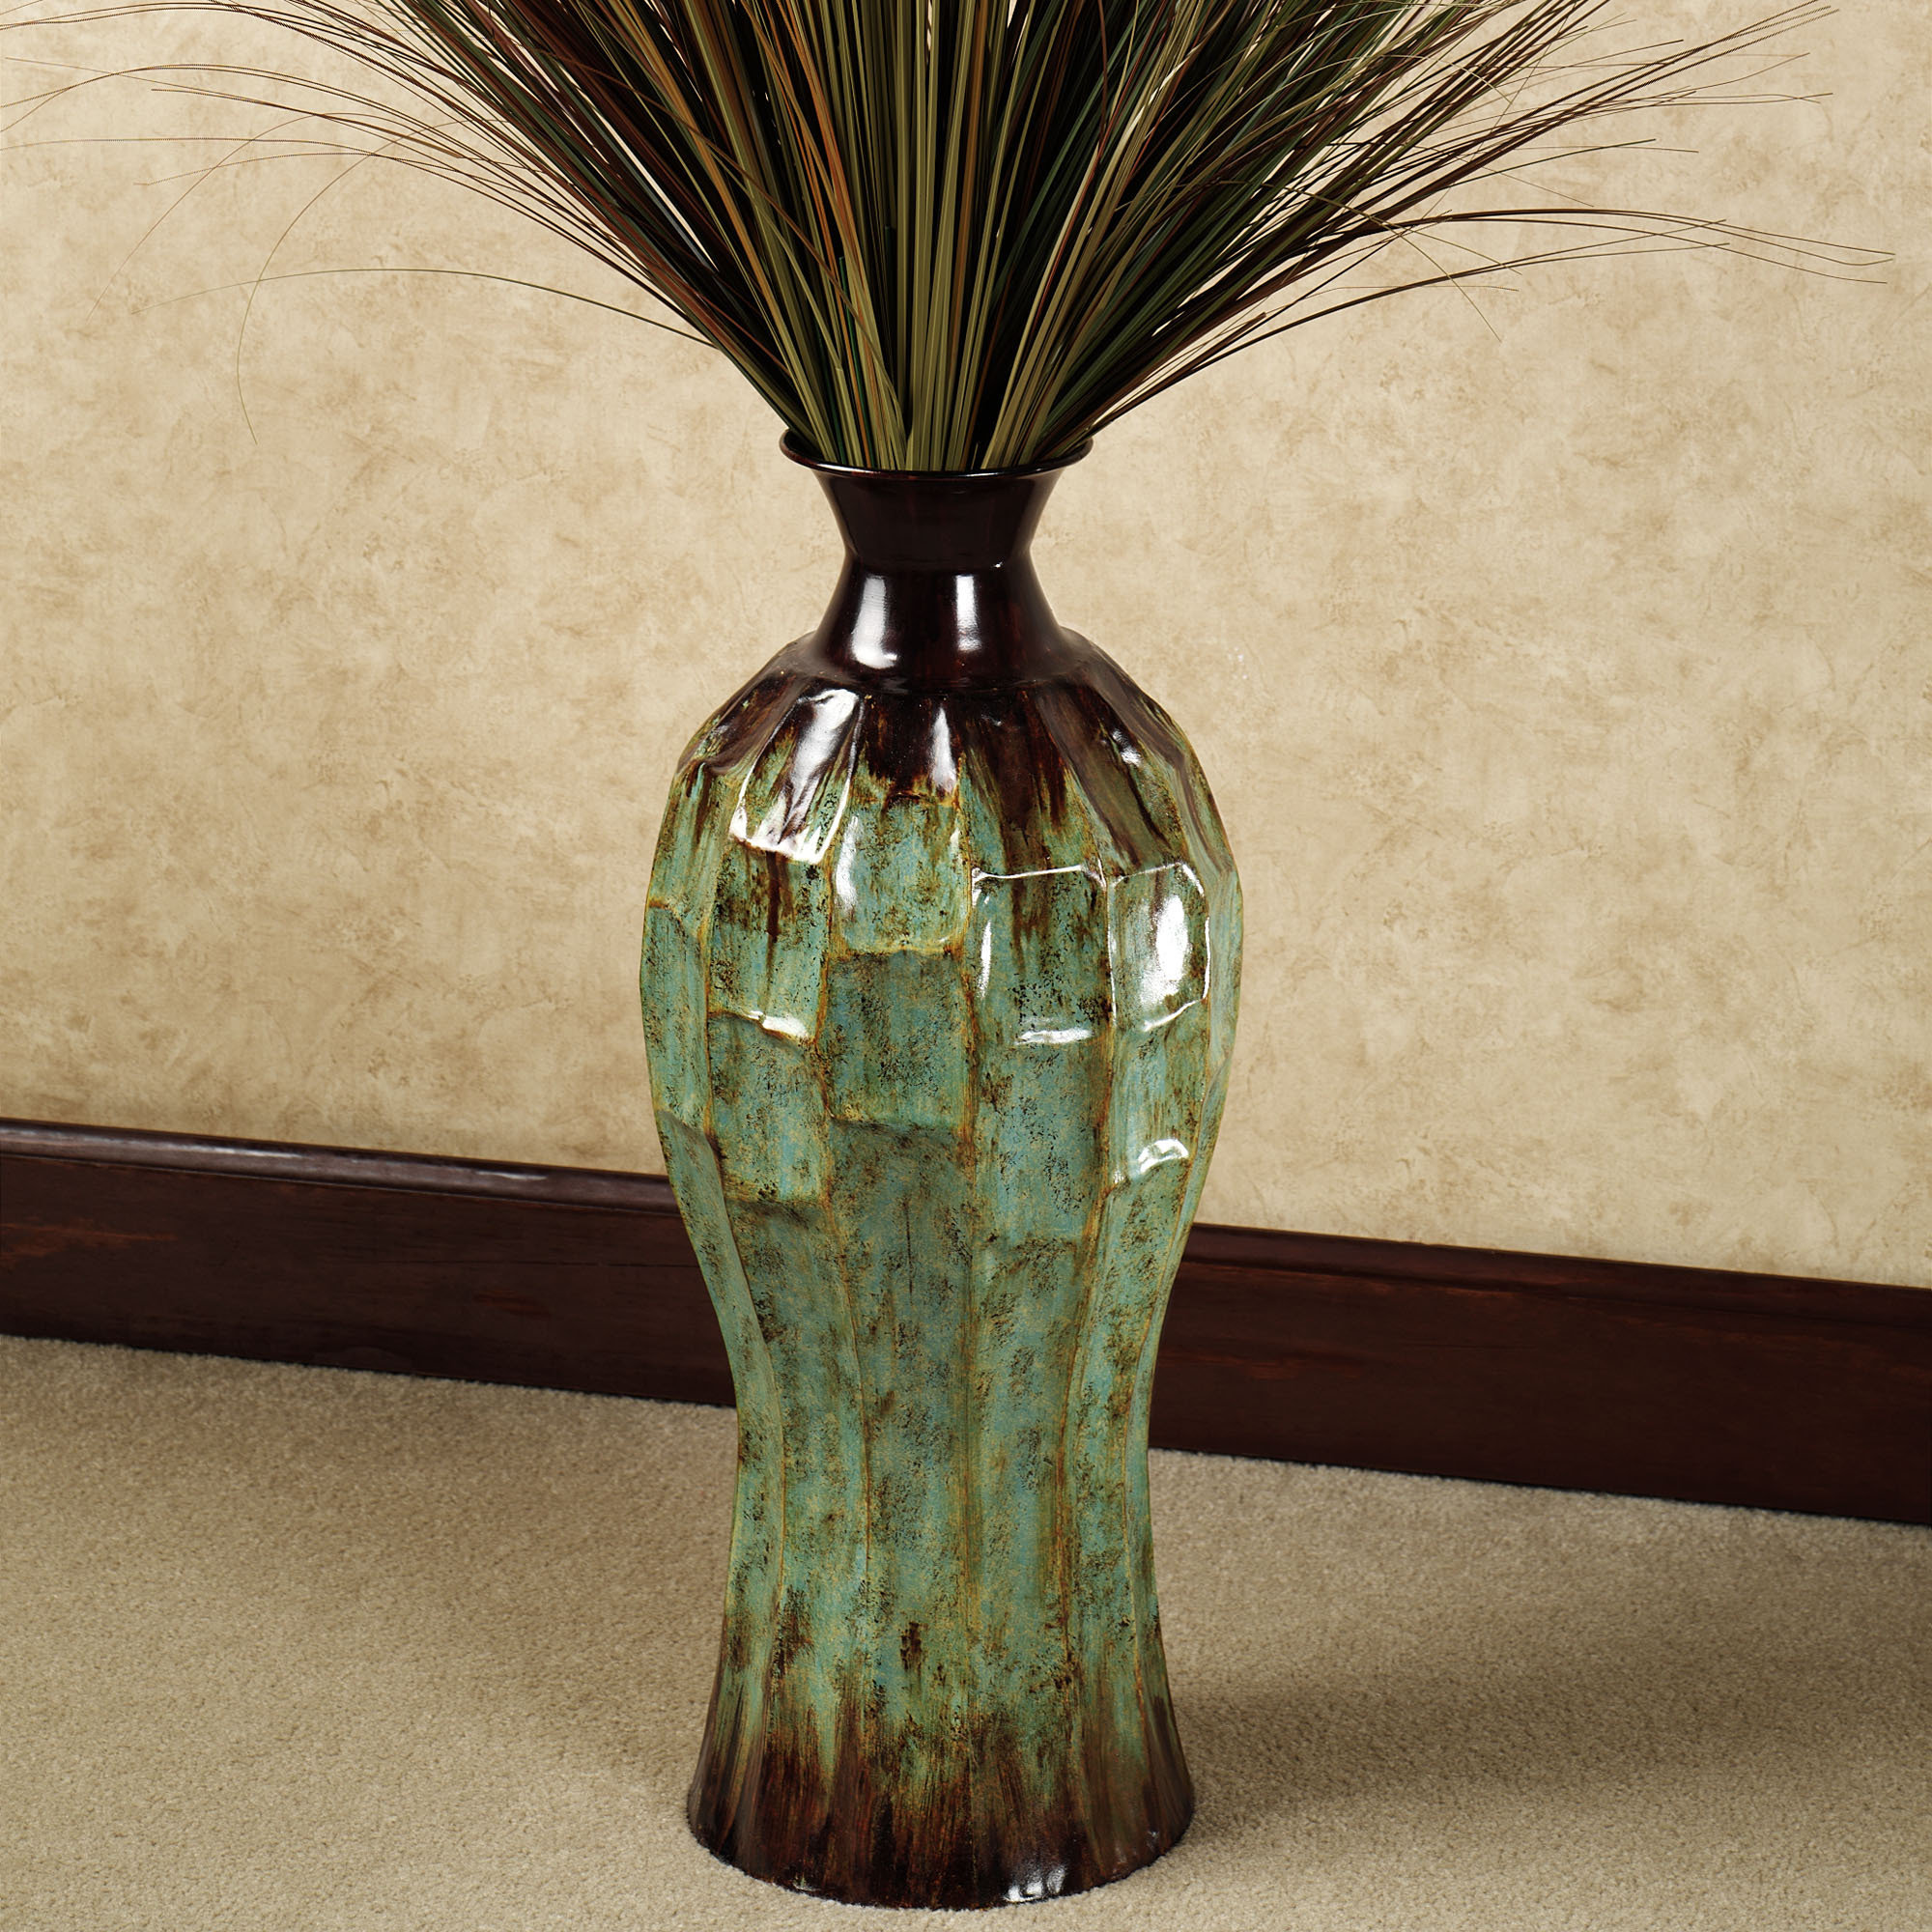 Furniture floor vase modern floor vases decorative floor vases floor vase modern floor vases decorative floor vases reviewsmspy